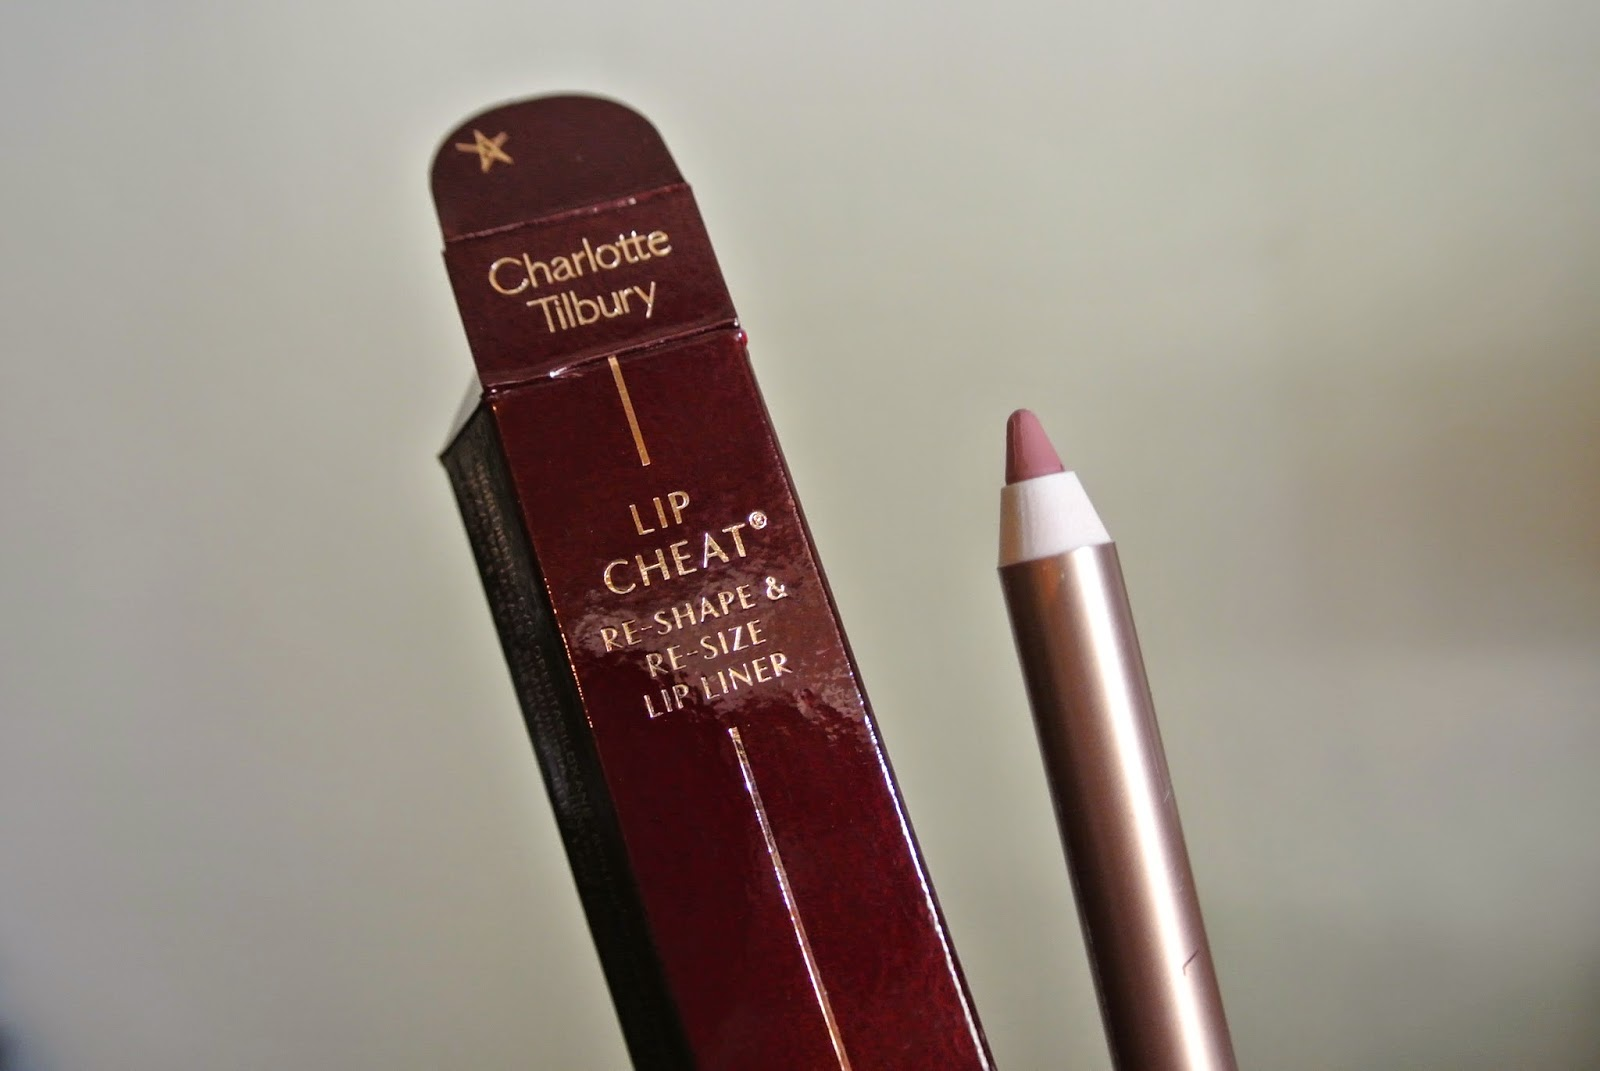 Lip Cheat lip liner in Pillow Talk